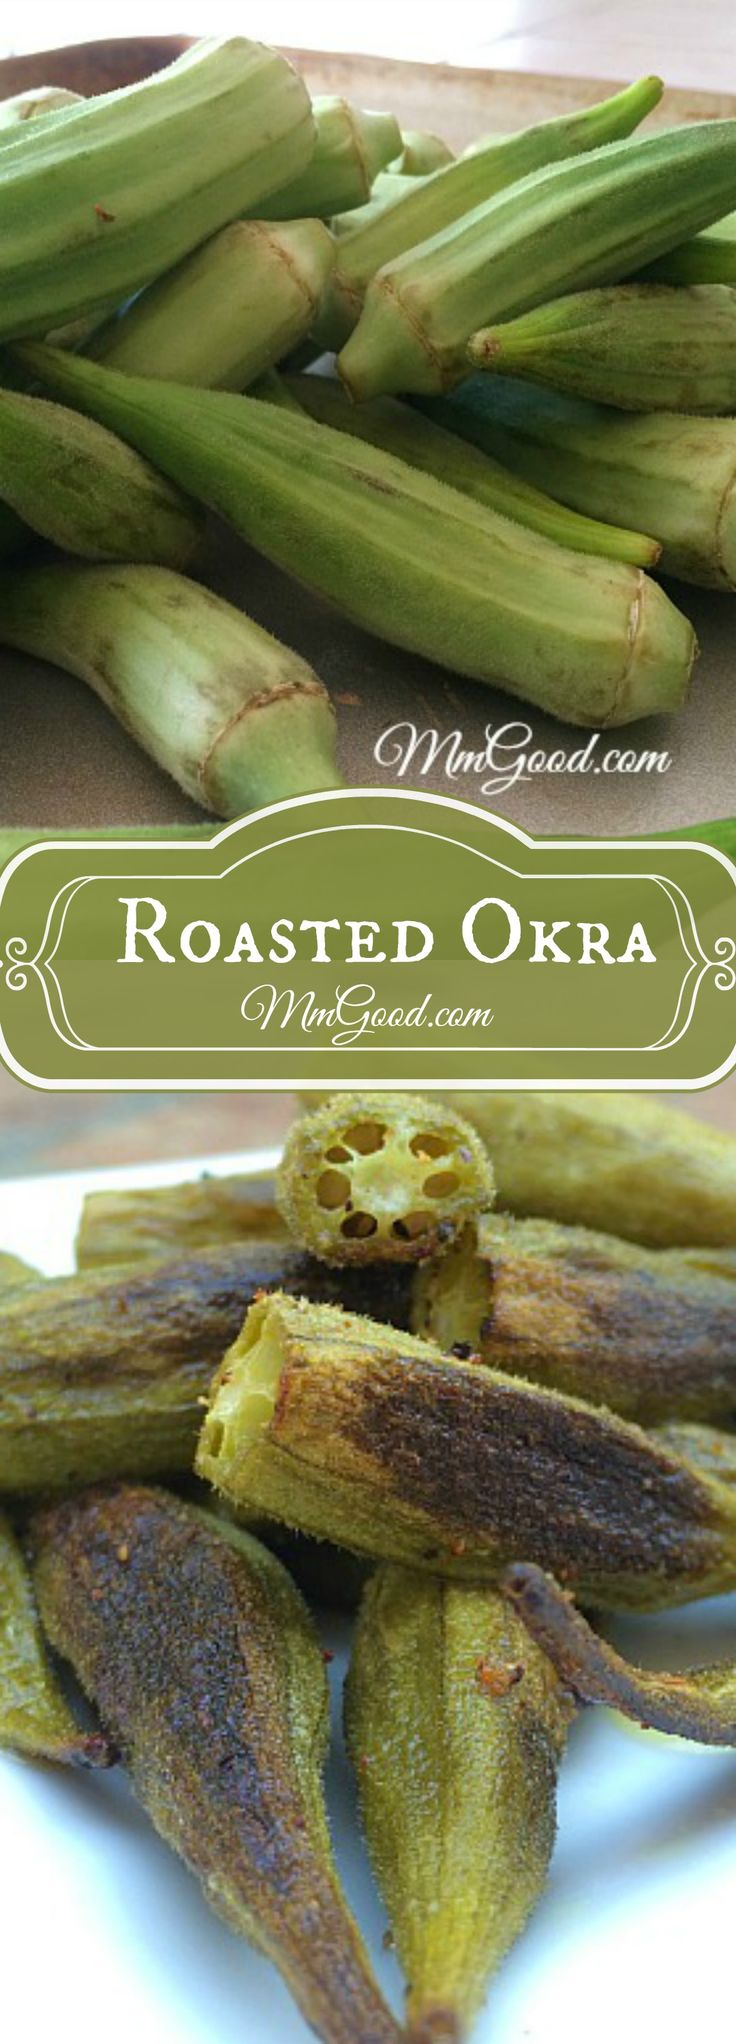 Okra does not need to be fried to taste delicious!  Bring out the sweetness of this vegetable by roasting it and surprise your family with a new vegetable that is healthy in fiber, this is a great, easy recipe for anyone to try   www.MmGood.com